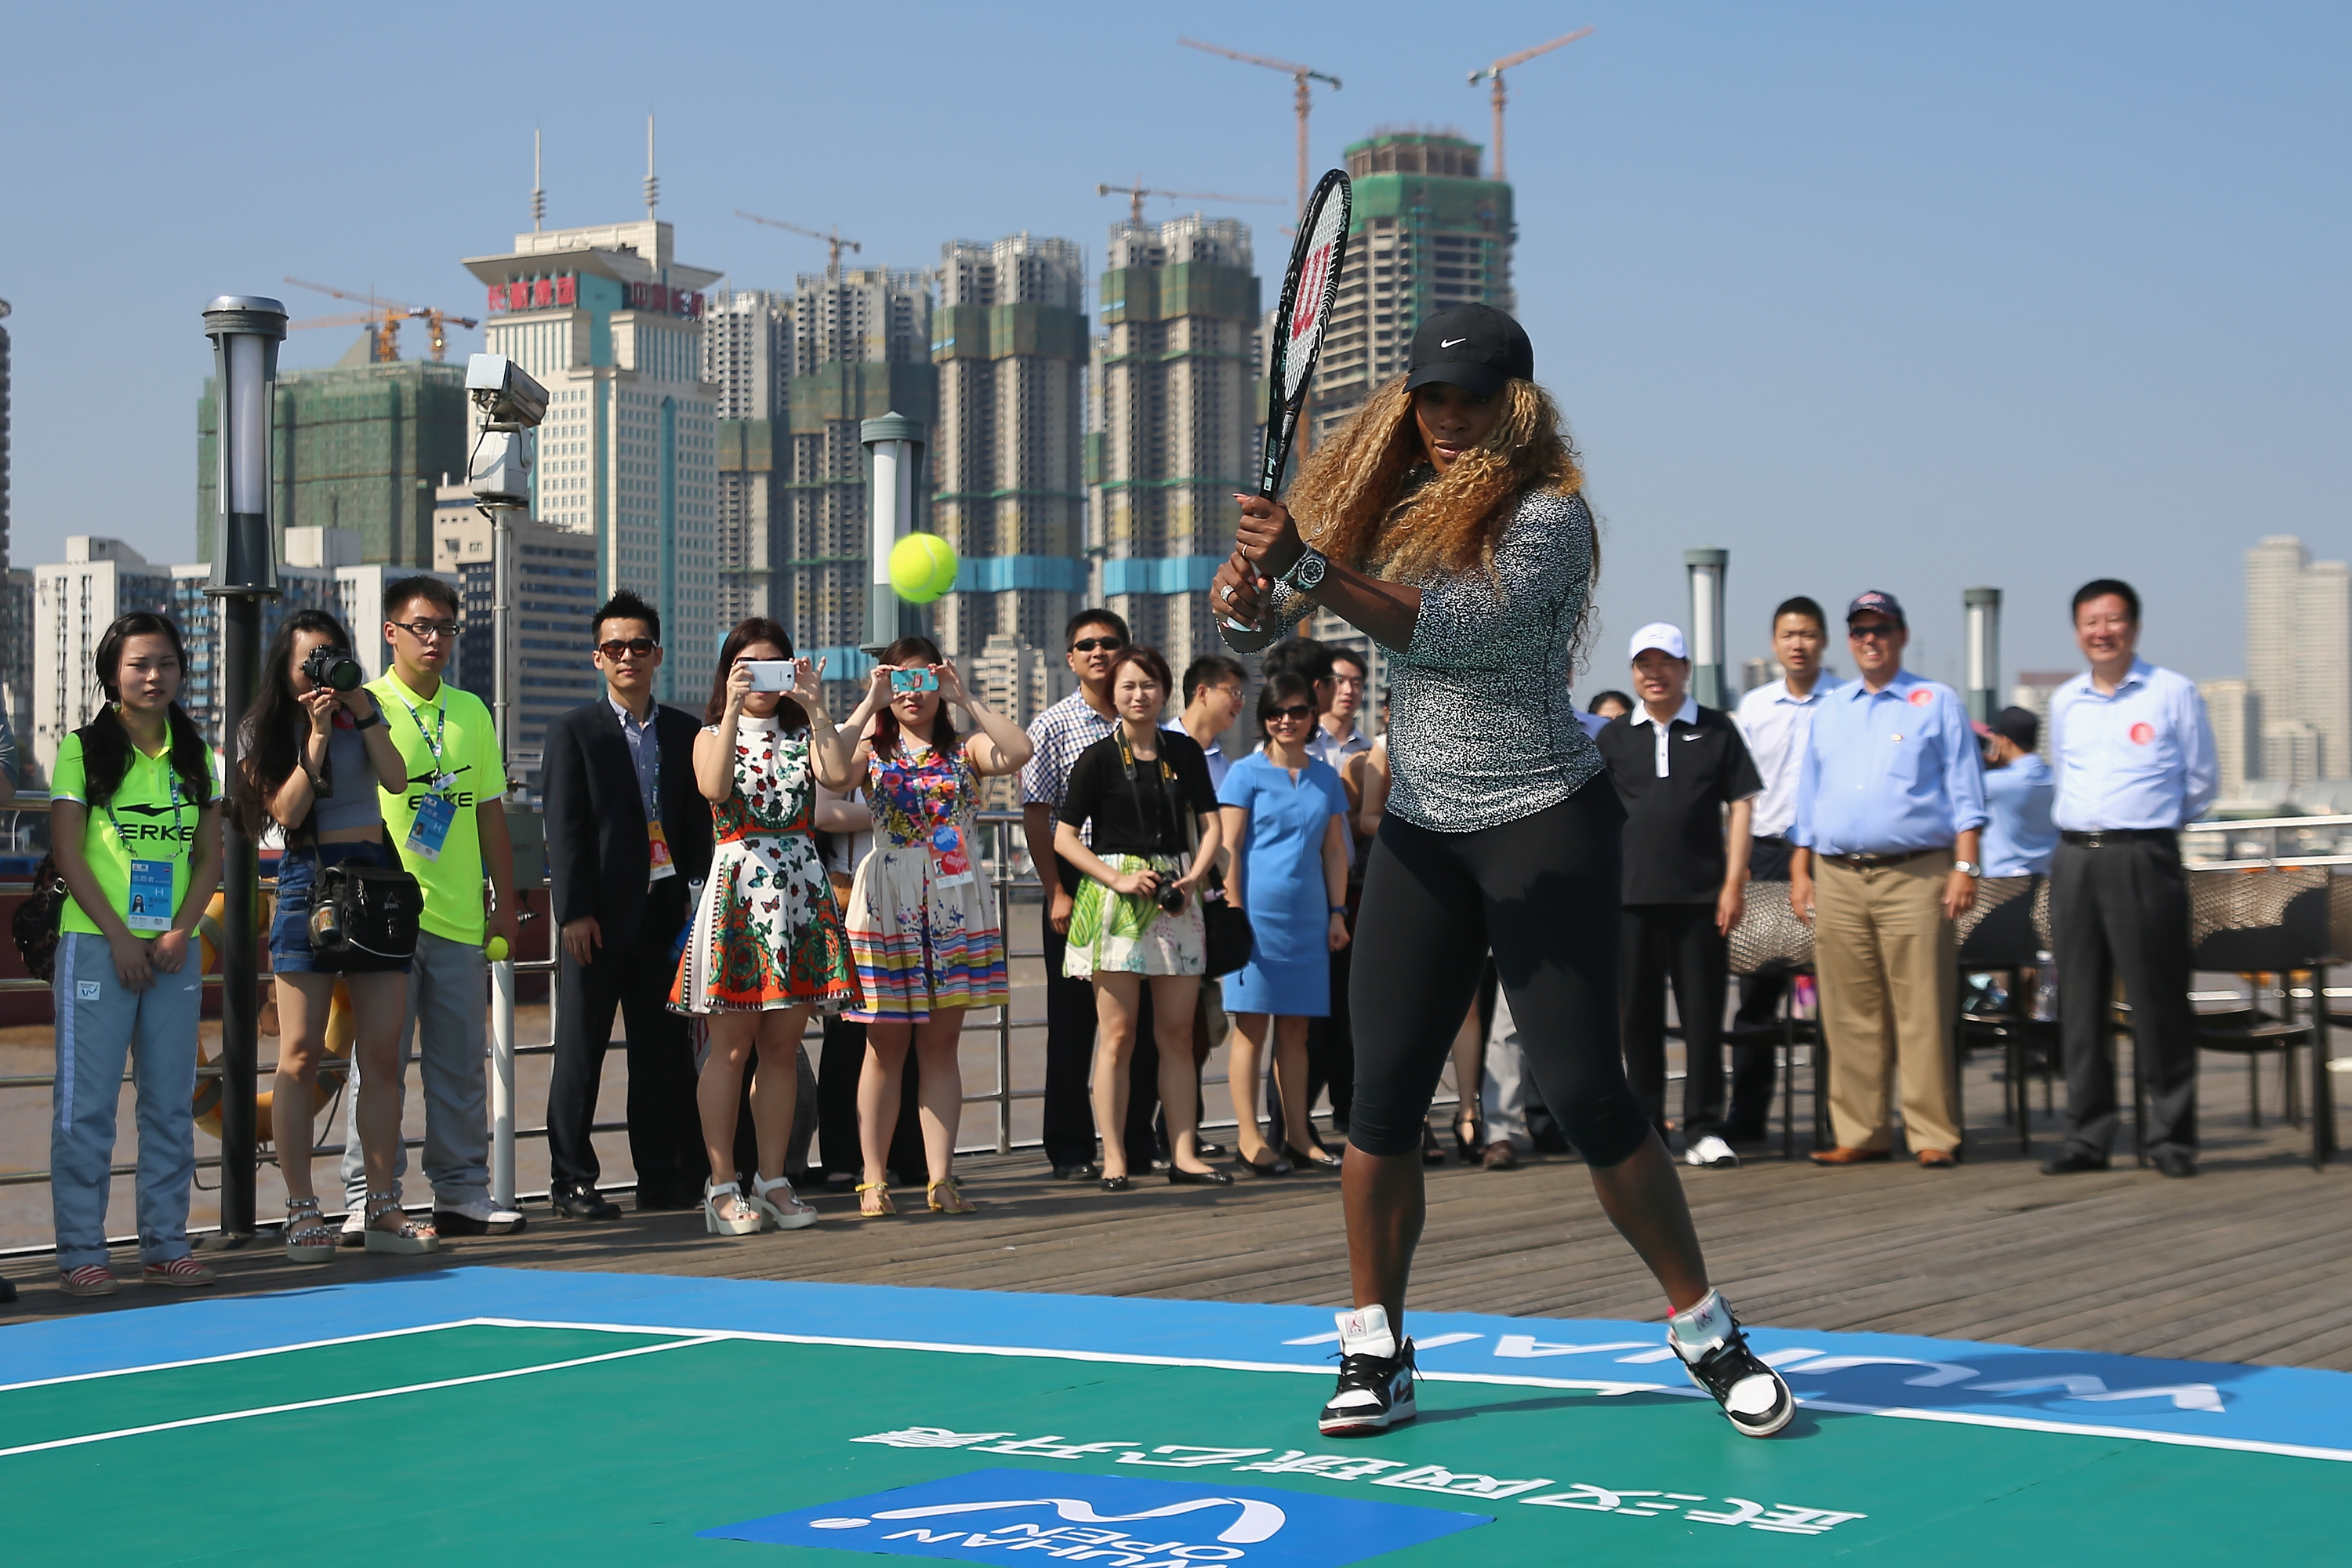 Serena Williams plays a shot on deck of a ship during the Changjiang River cruise event at the Wuhan Open.